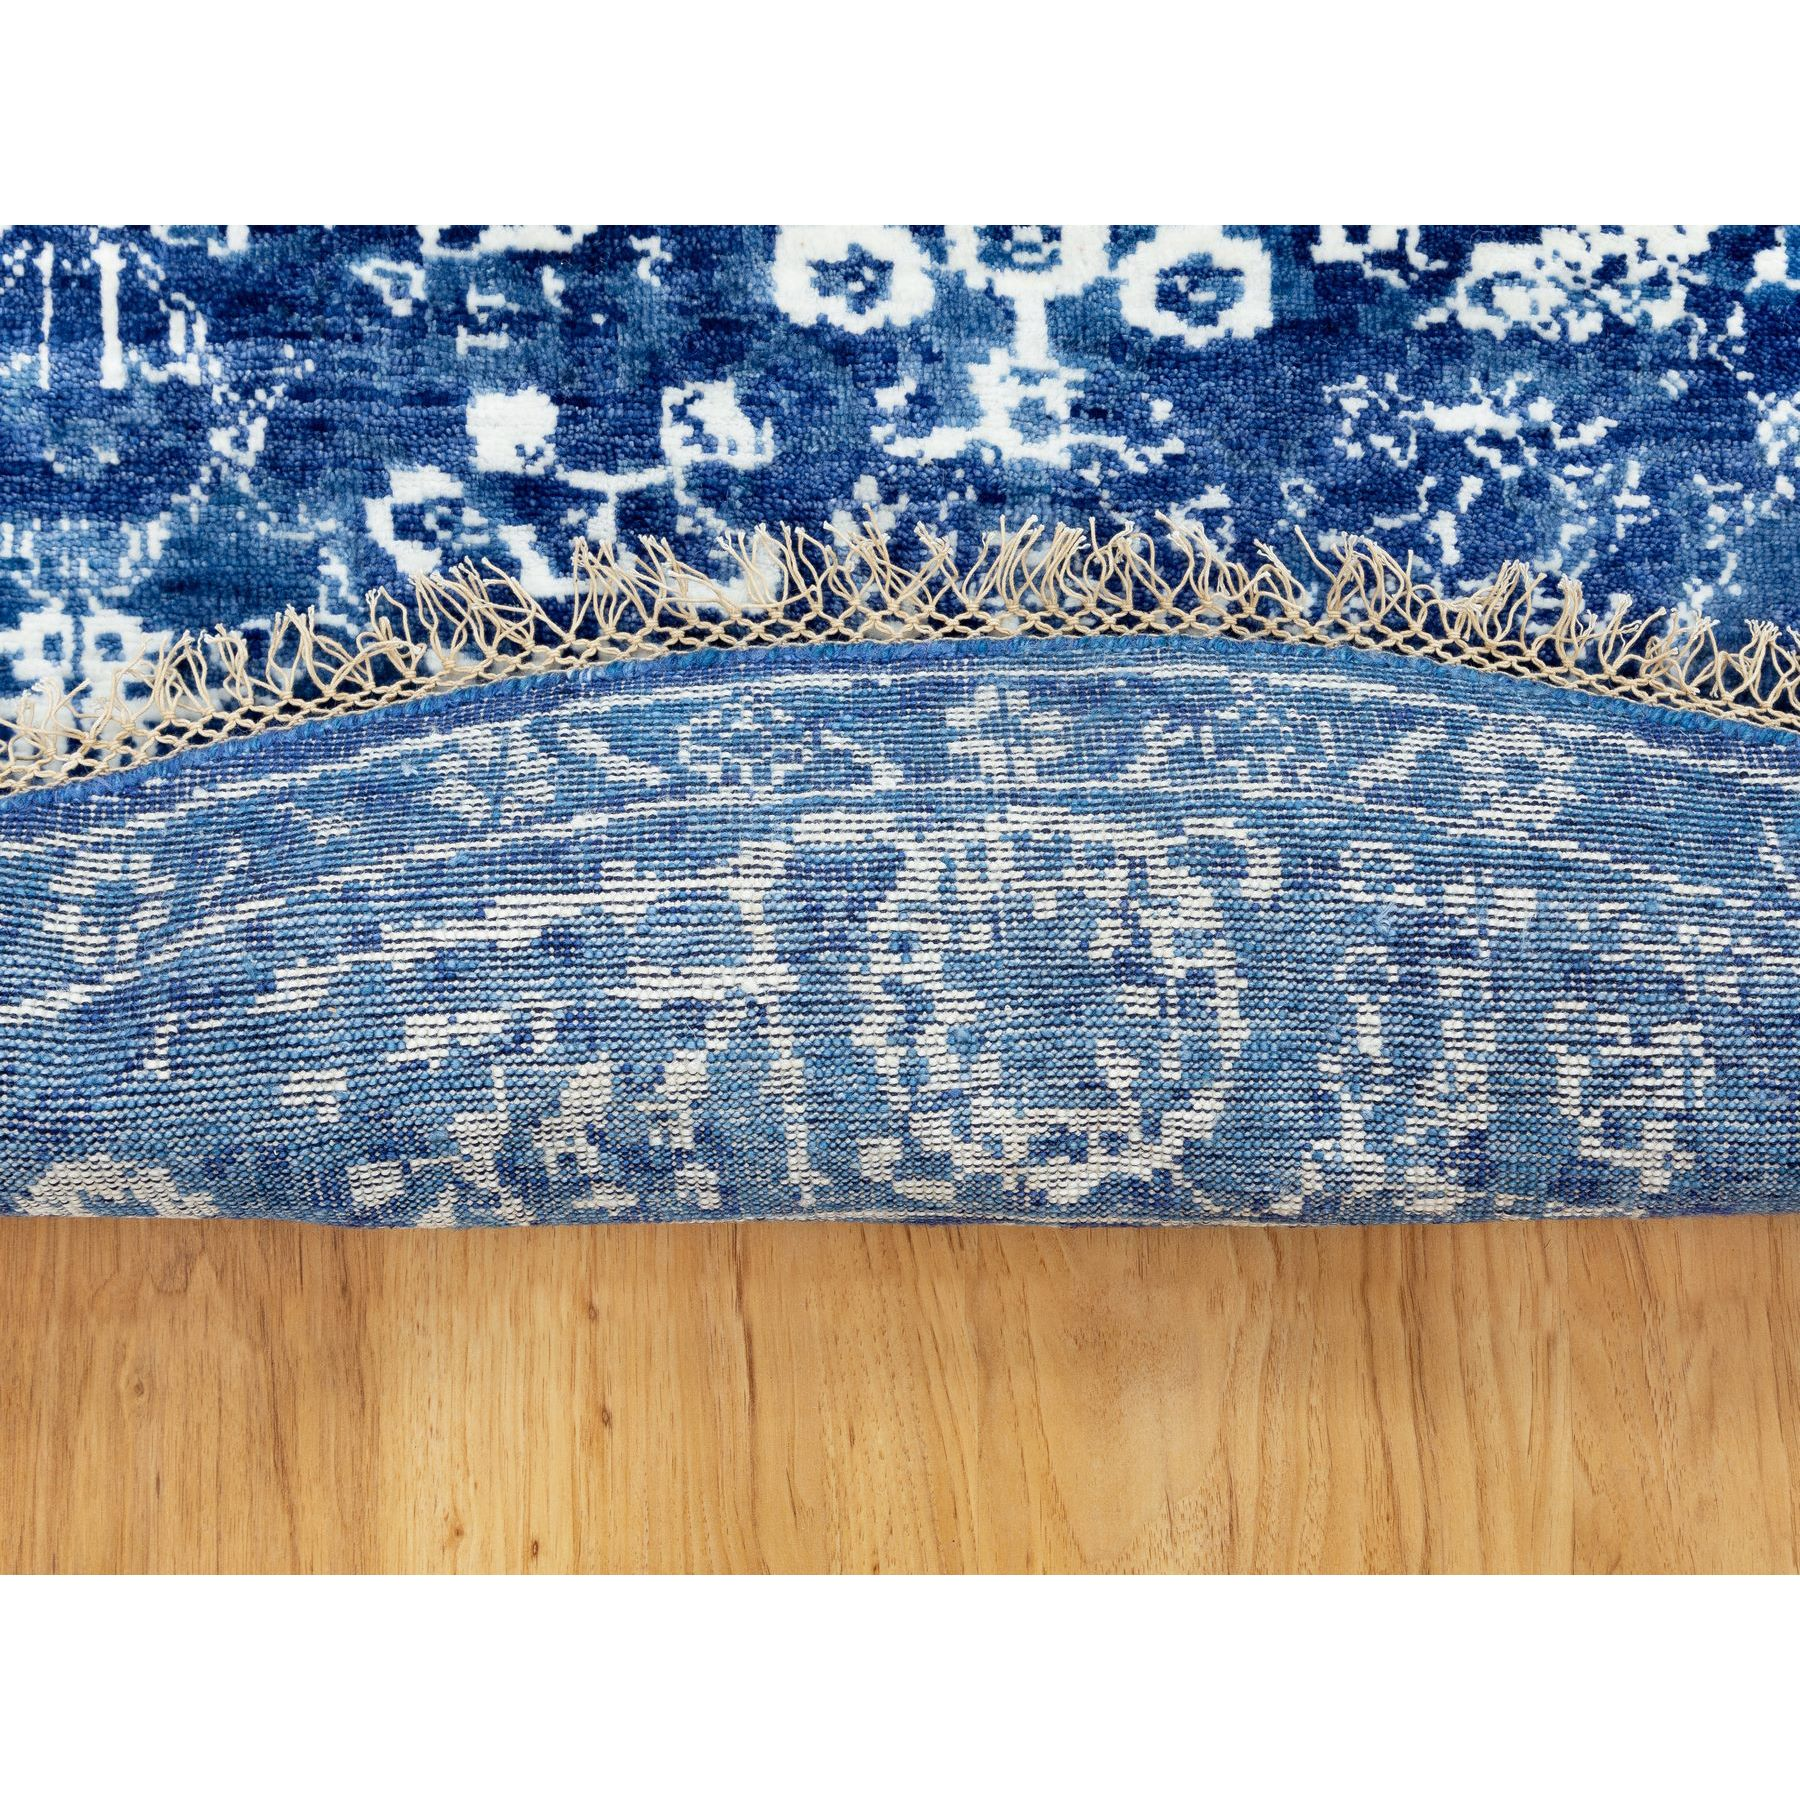 "6'2""x6'2"" Blue Tone On Tone Tabriz Wool and Silk Round Hand Woven Oriental Rug"